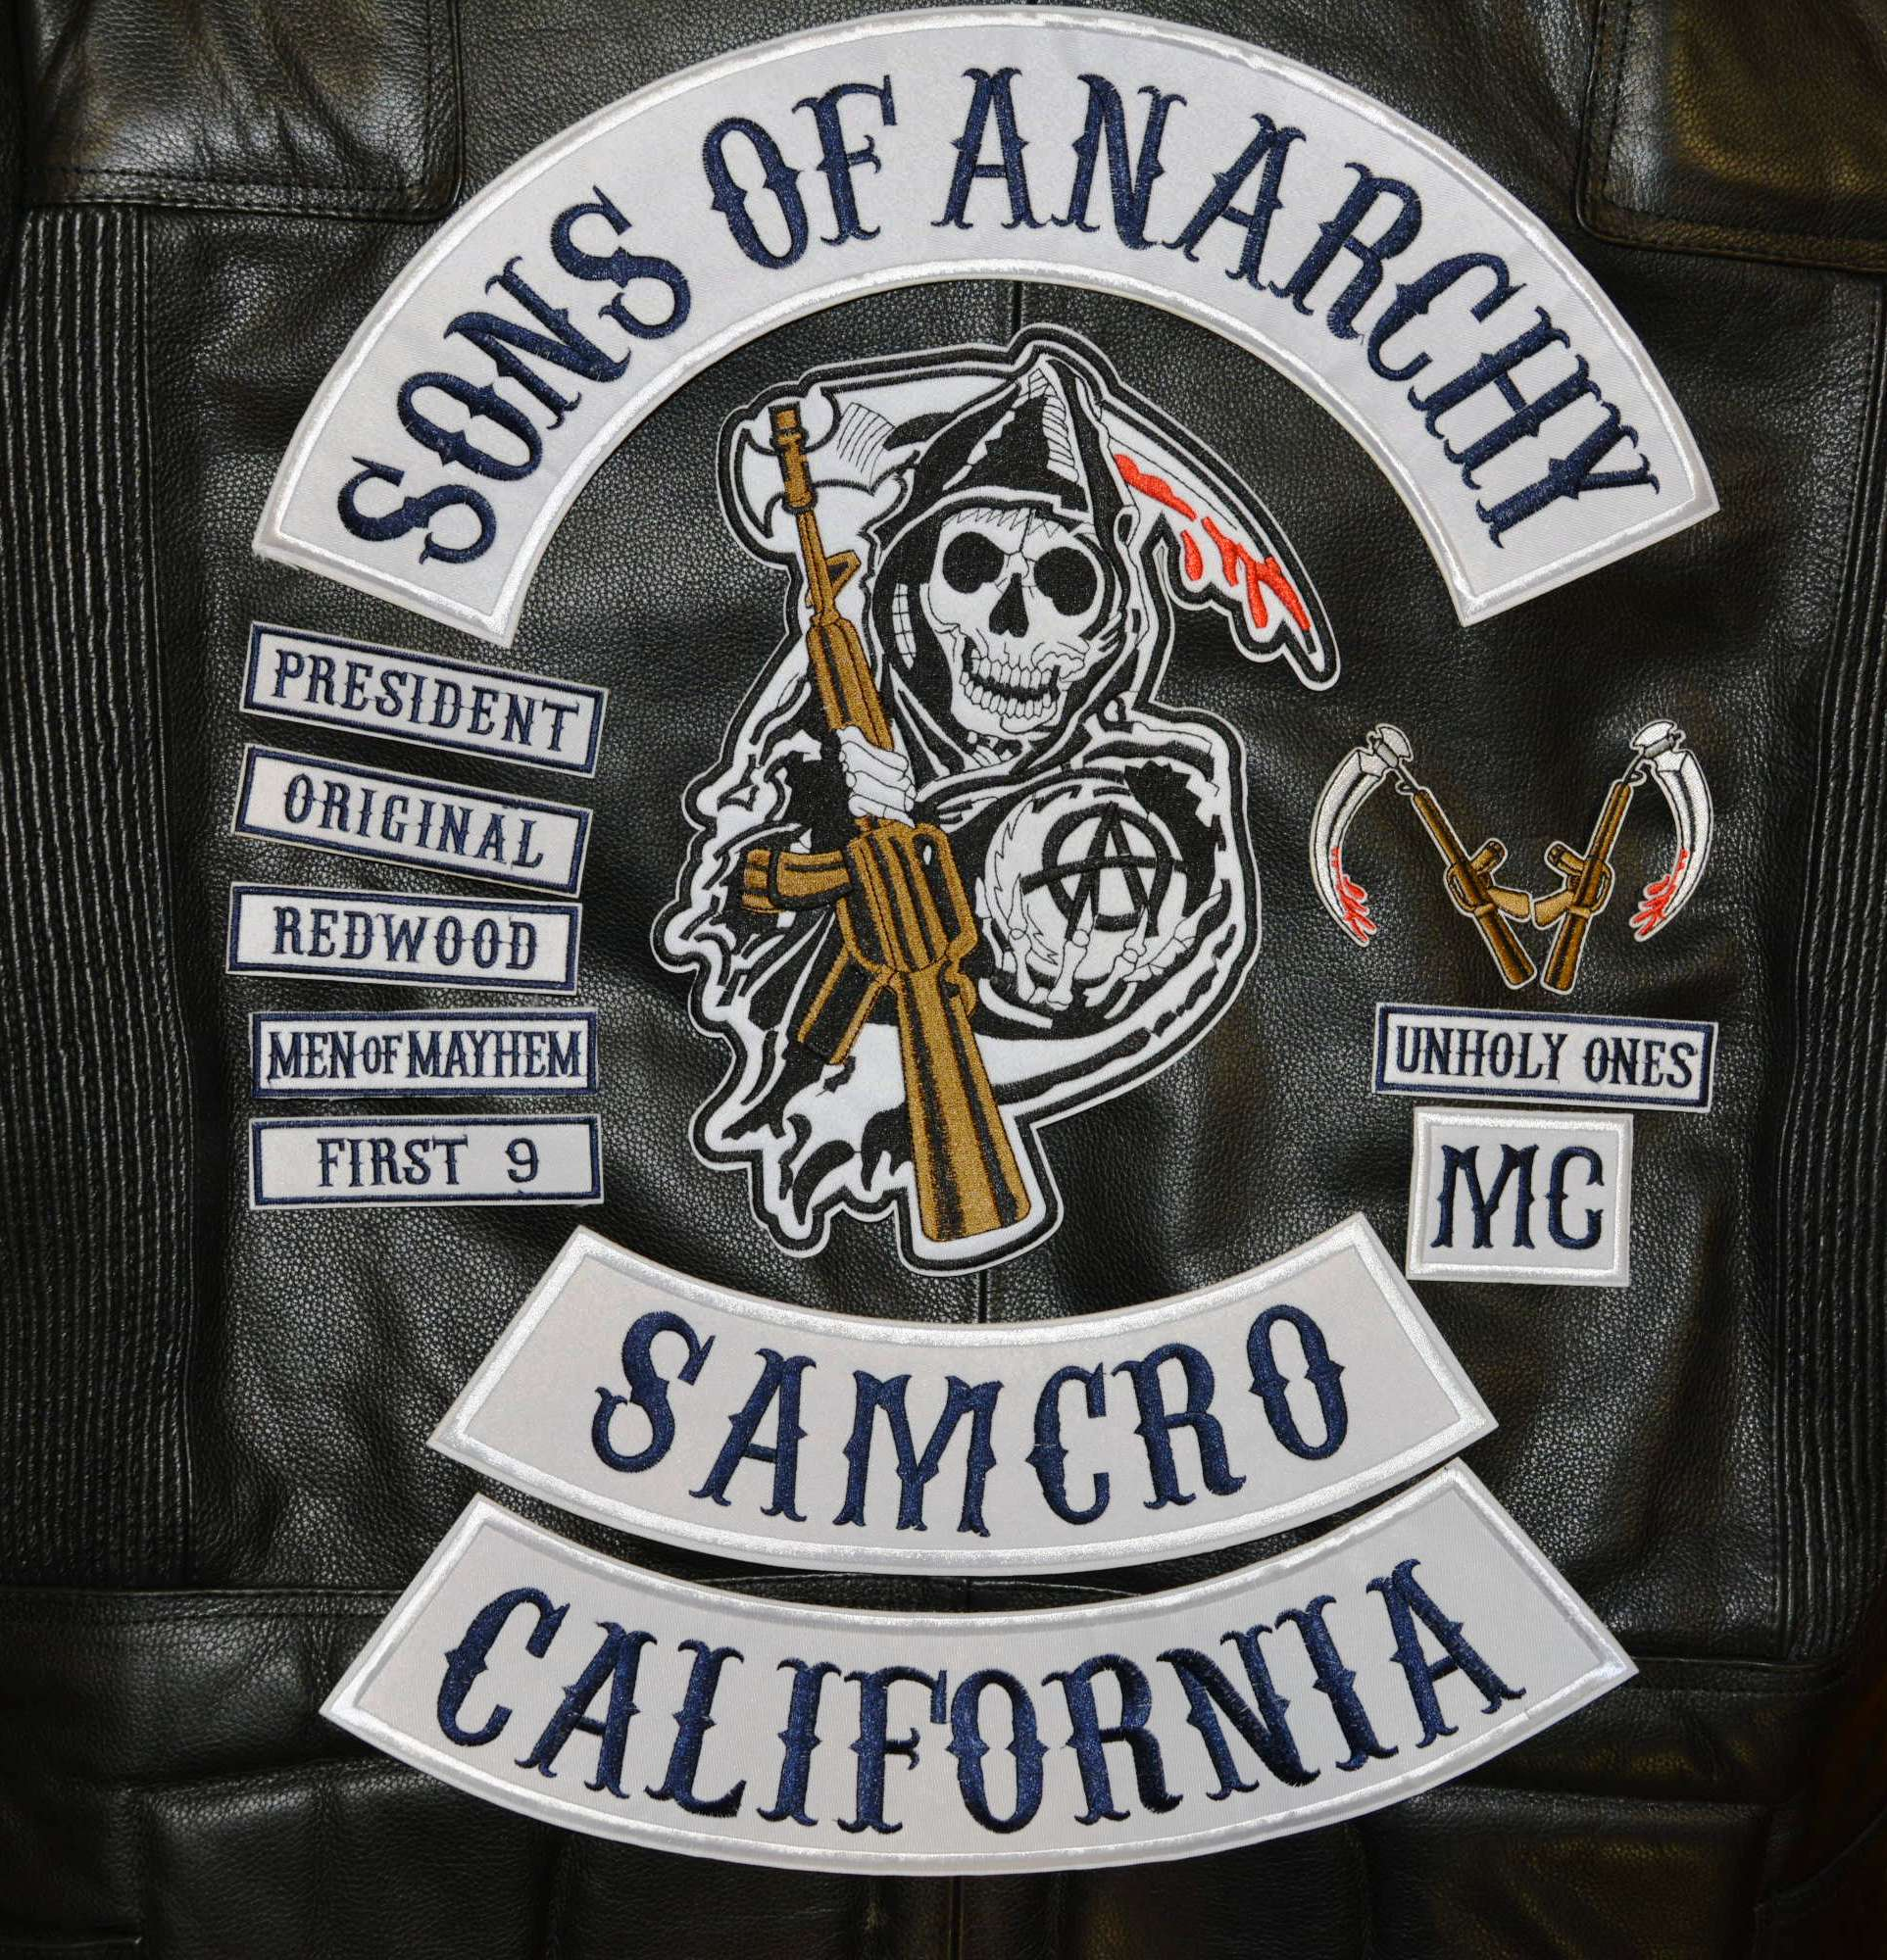 sons of anarchy embroidery twill biker patches for jacket. Black Bedroom Furniture Sets. Home Design Ideas